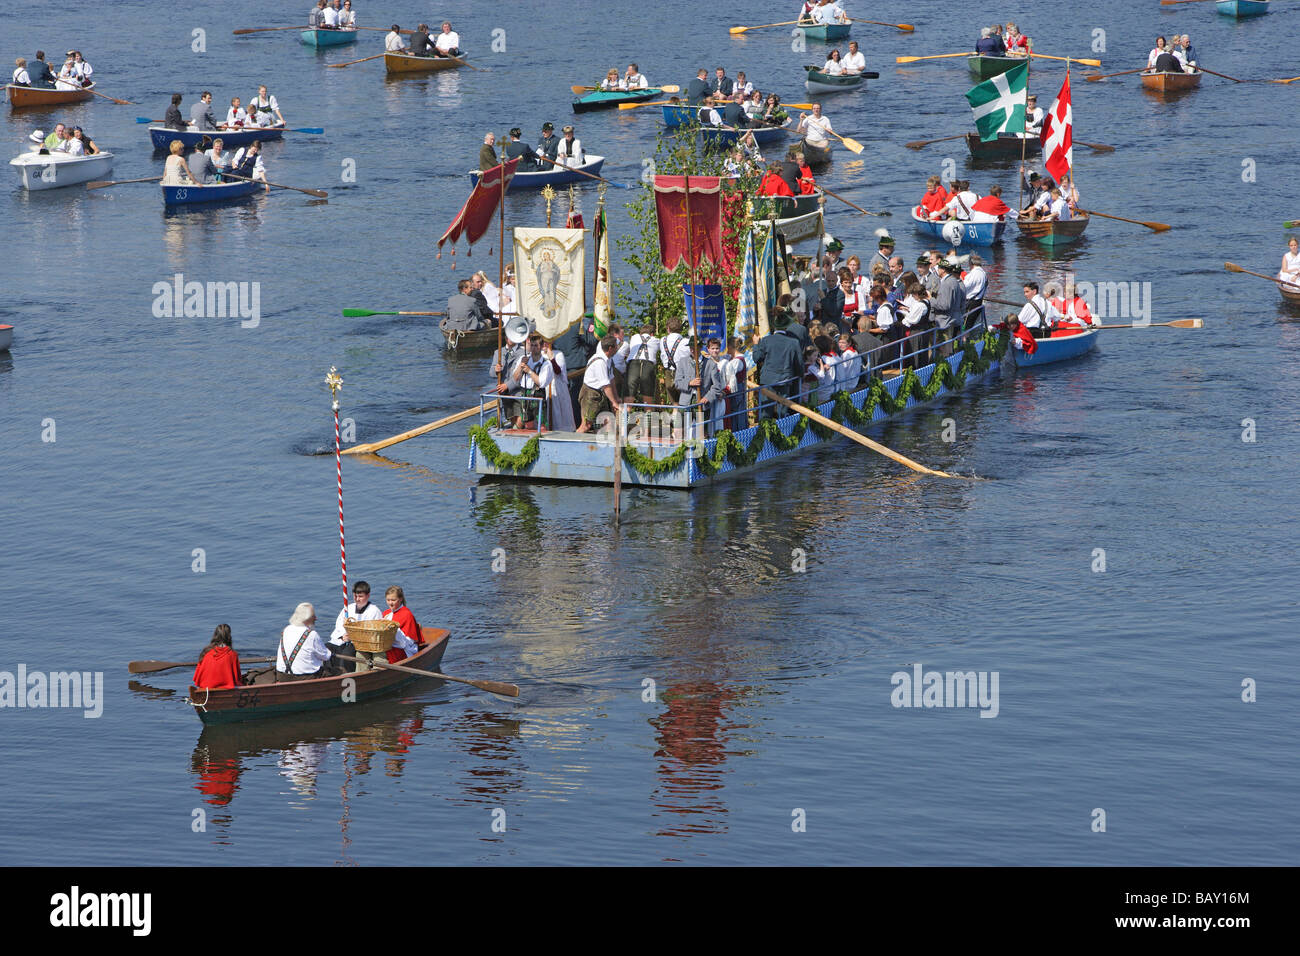 People in rowing boats, Boat procession at Corpus Christi at lake Staffelsee, Bavaria, Germany - Stock Image